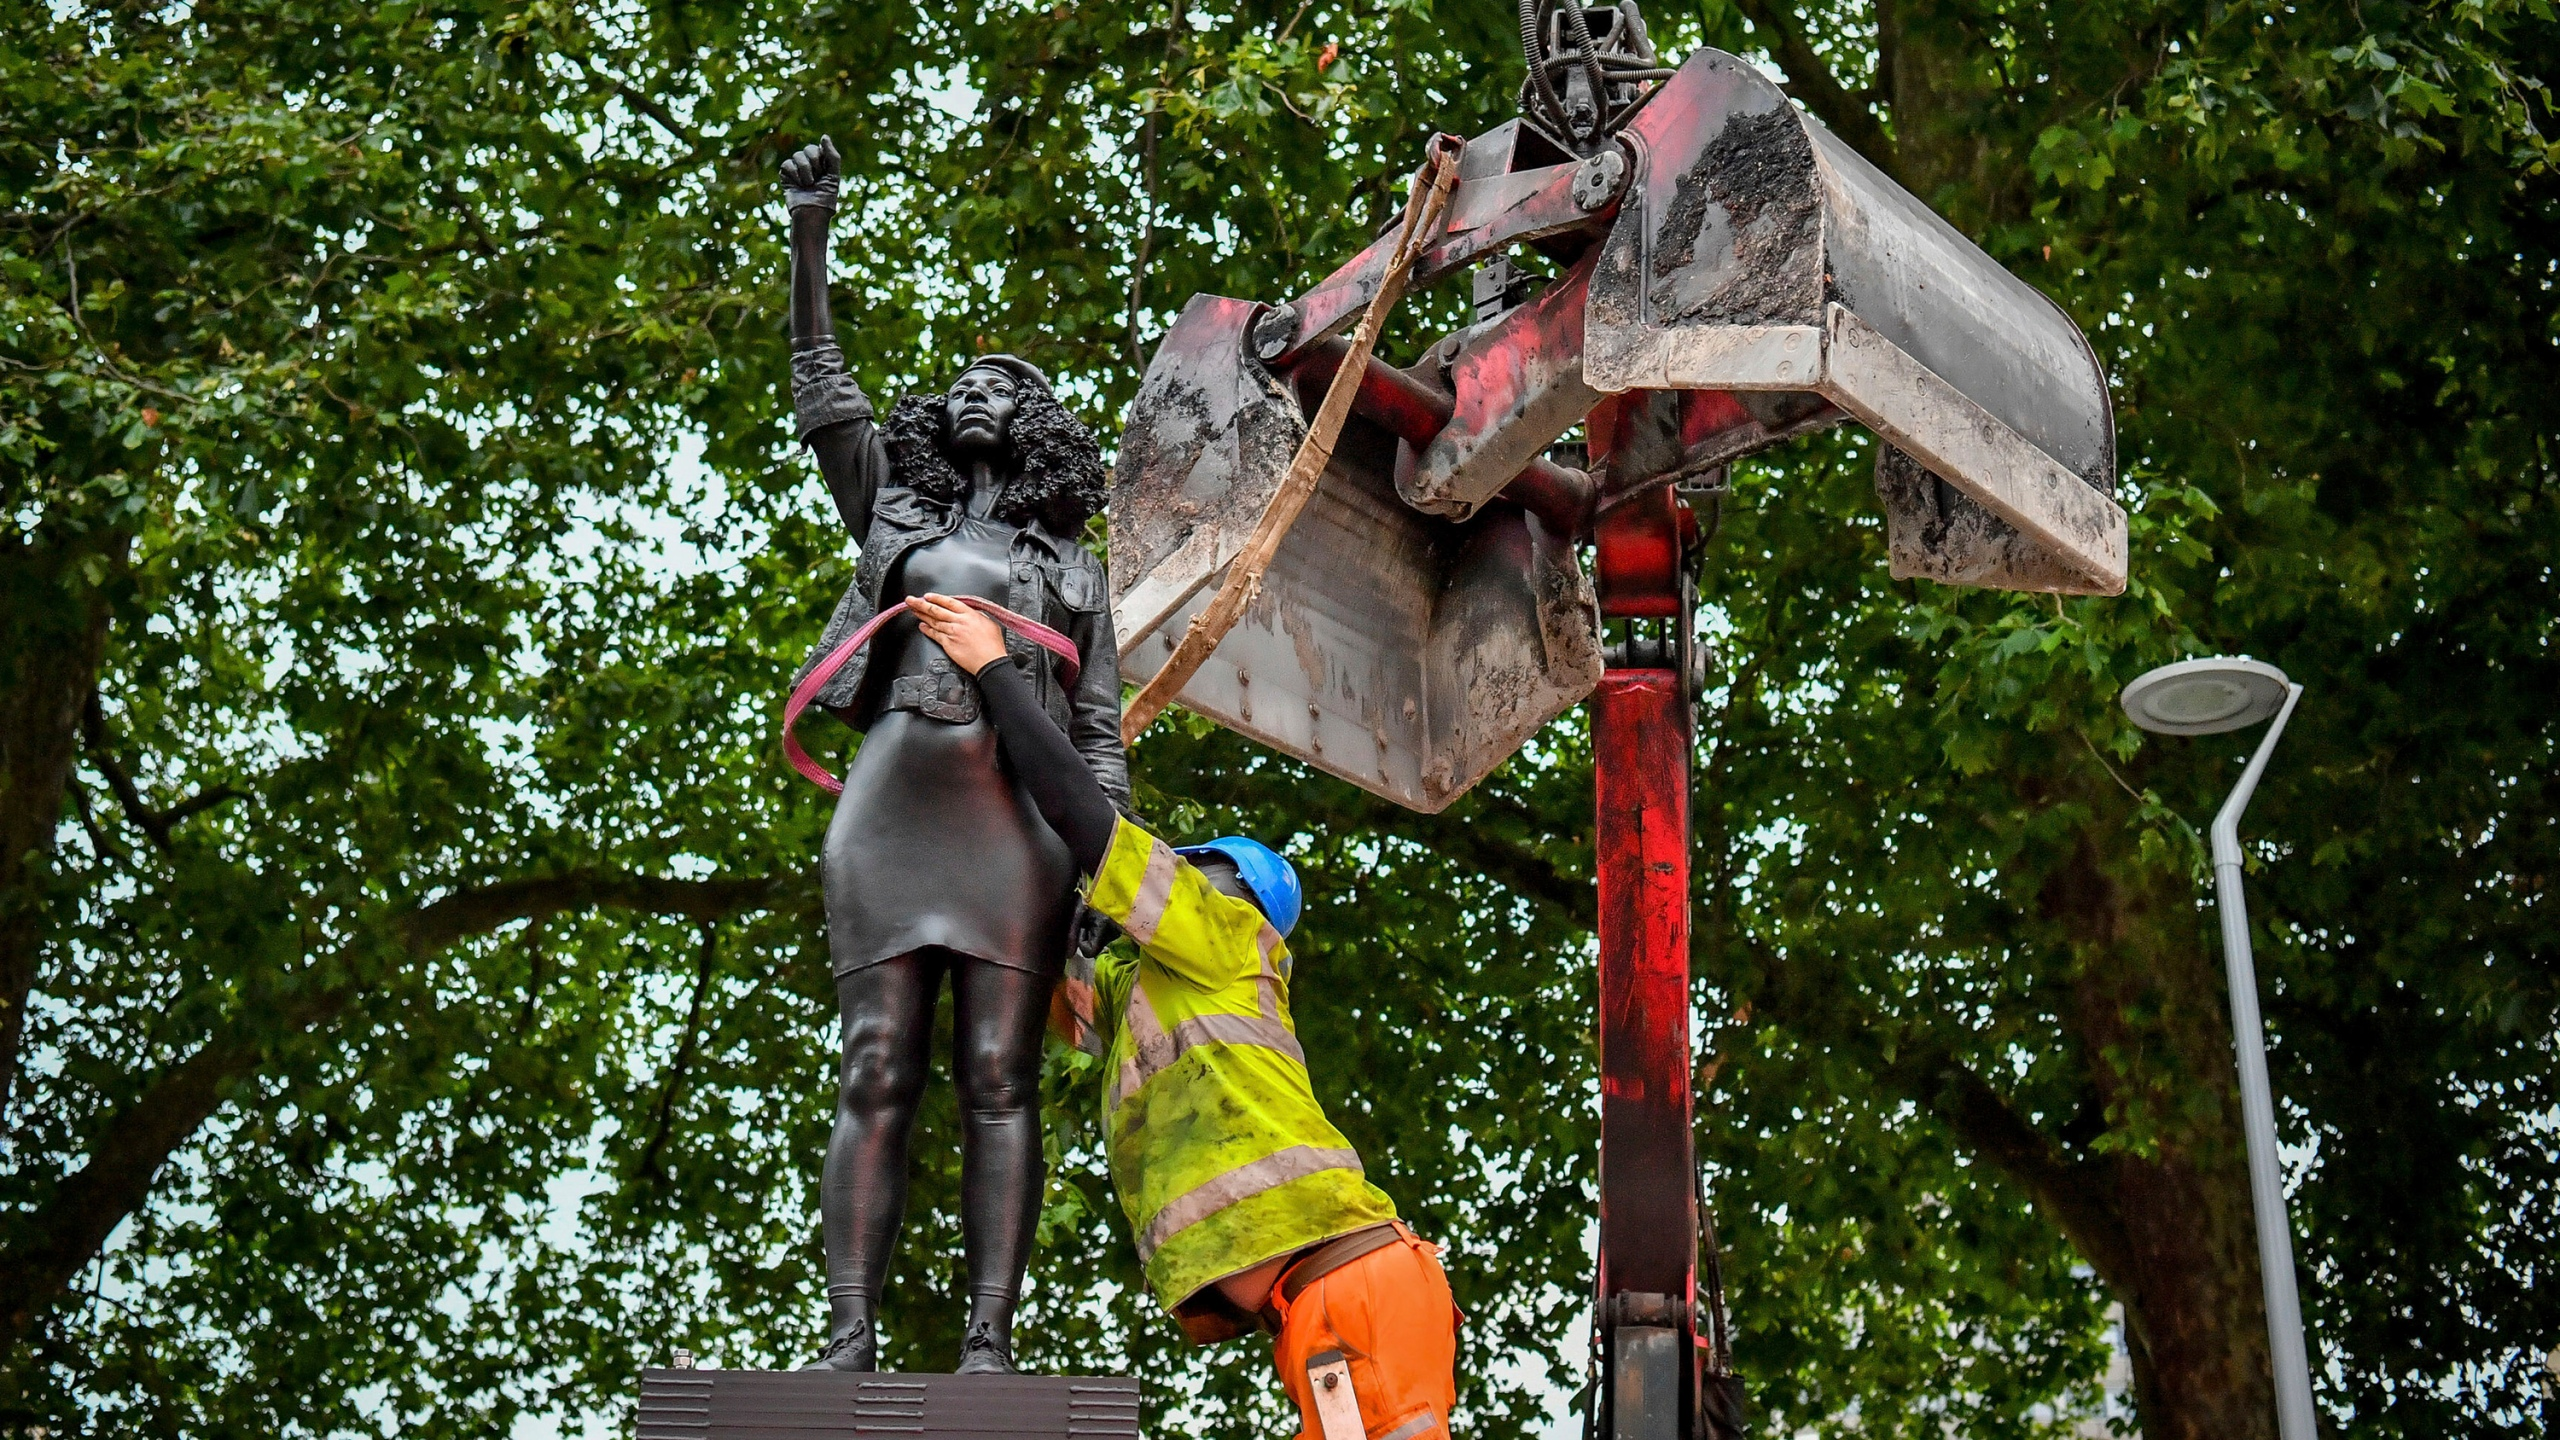 """A contractor uses ropes to secure the statue """"A Surge of Power (Jen Reid) 2020"""" by artist Marc Quinn, which had been installed on the site of the fallen statue of the slave trader Edward Colston, as they prepare to remove and load it into a recycling and skip hire lorry, in Bristol on July 16, 2020. (Ben Birchall/PA via AP)"""